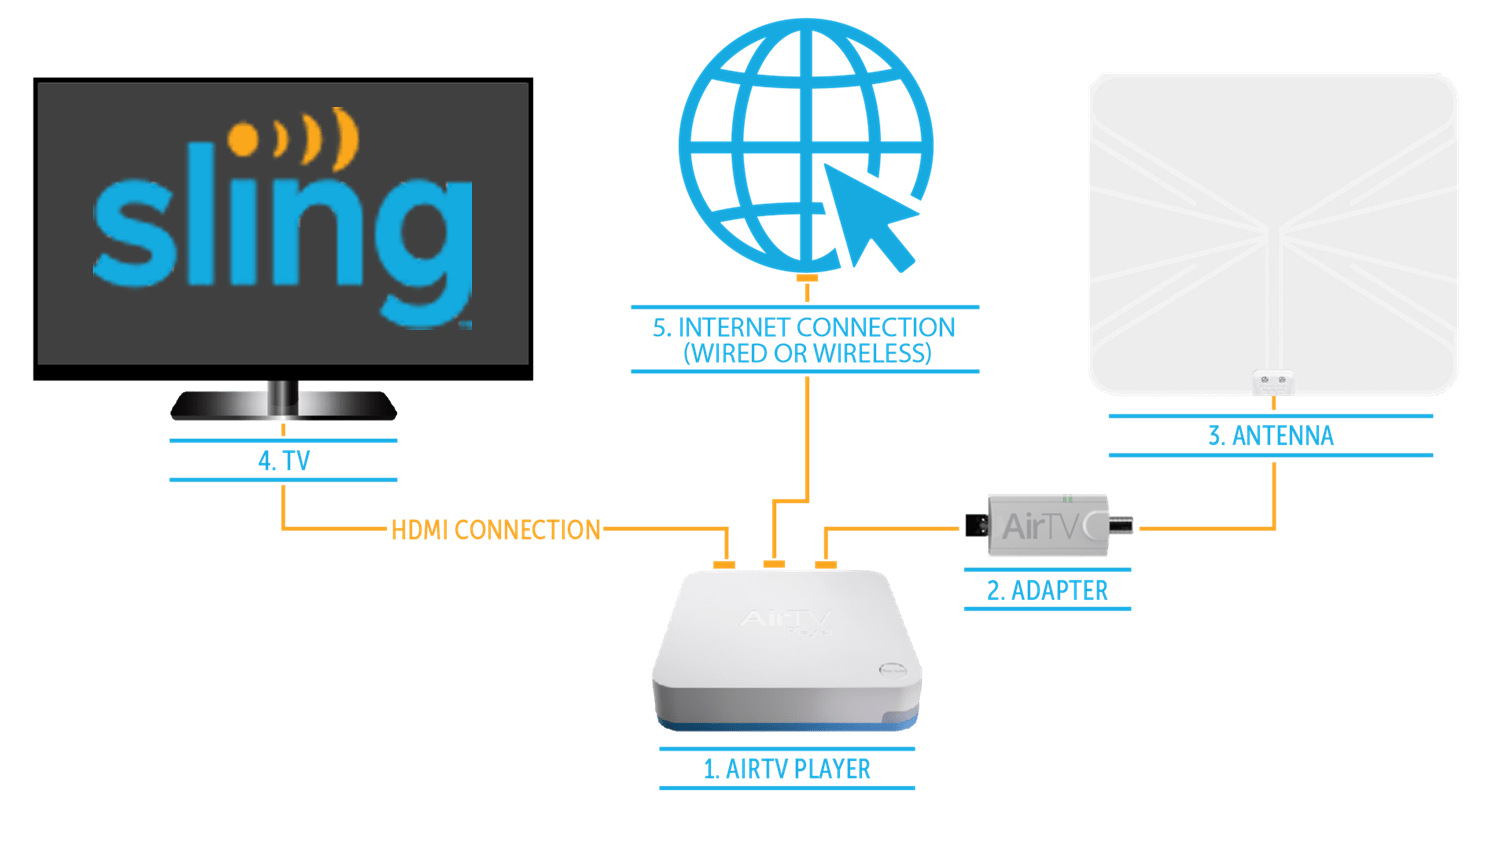 hight resolution of  over the air antenna sold separately and an ethernet or wi fi internet connection please see the diagram below to get the most out of your airtv